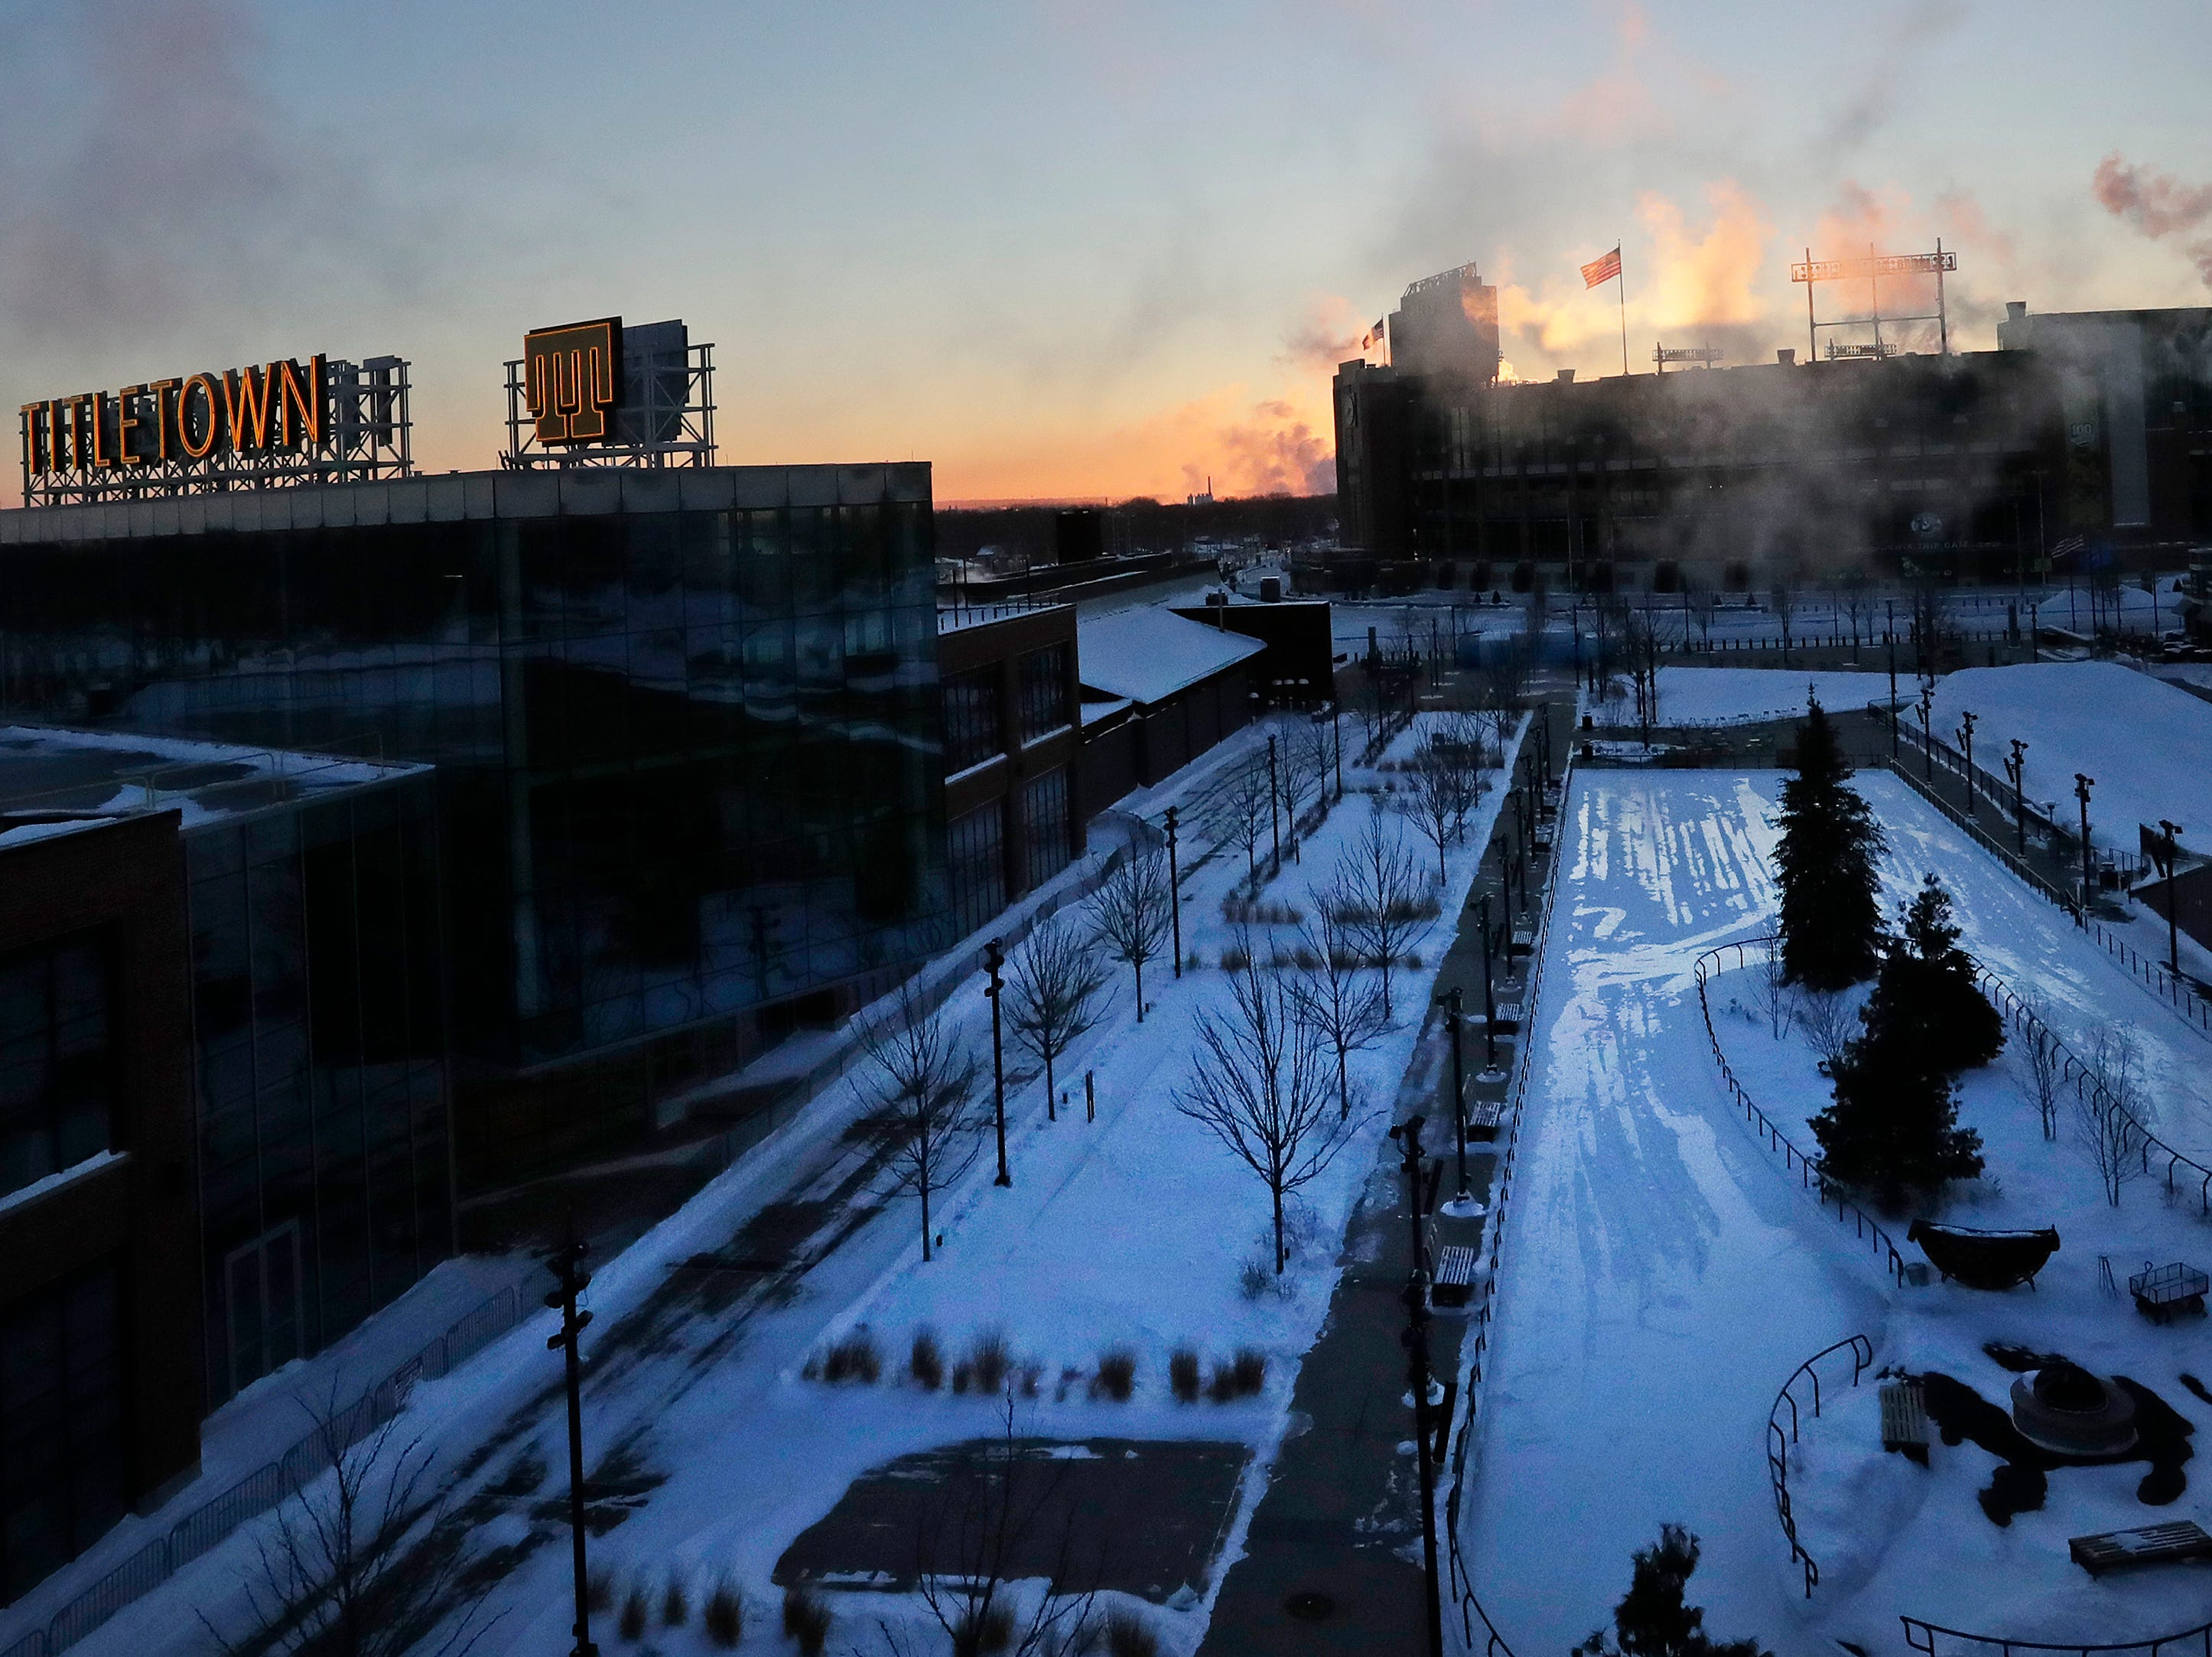 The sun rises with temperatures around -20 at Lambeau Field on Thursday, January 31, 2019 in Green Bay, Wis.